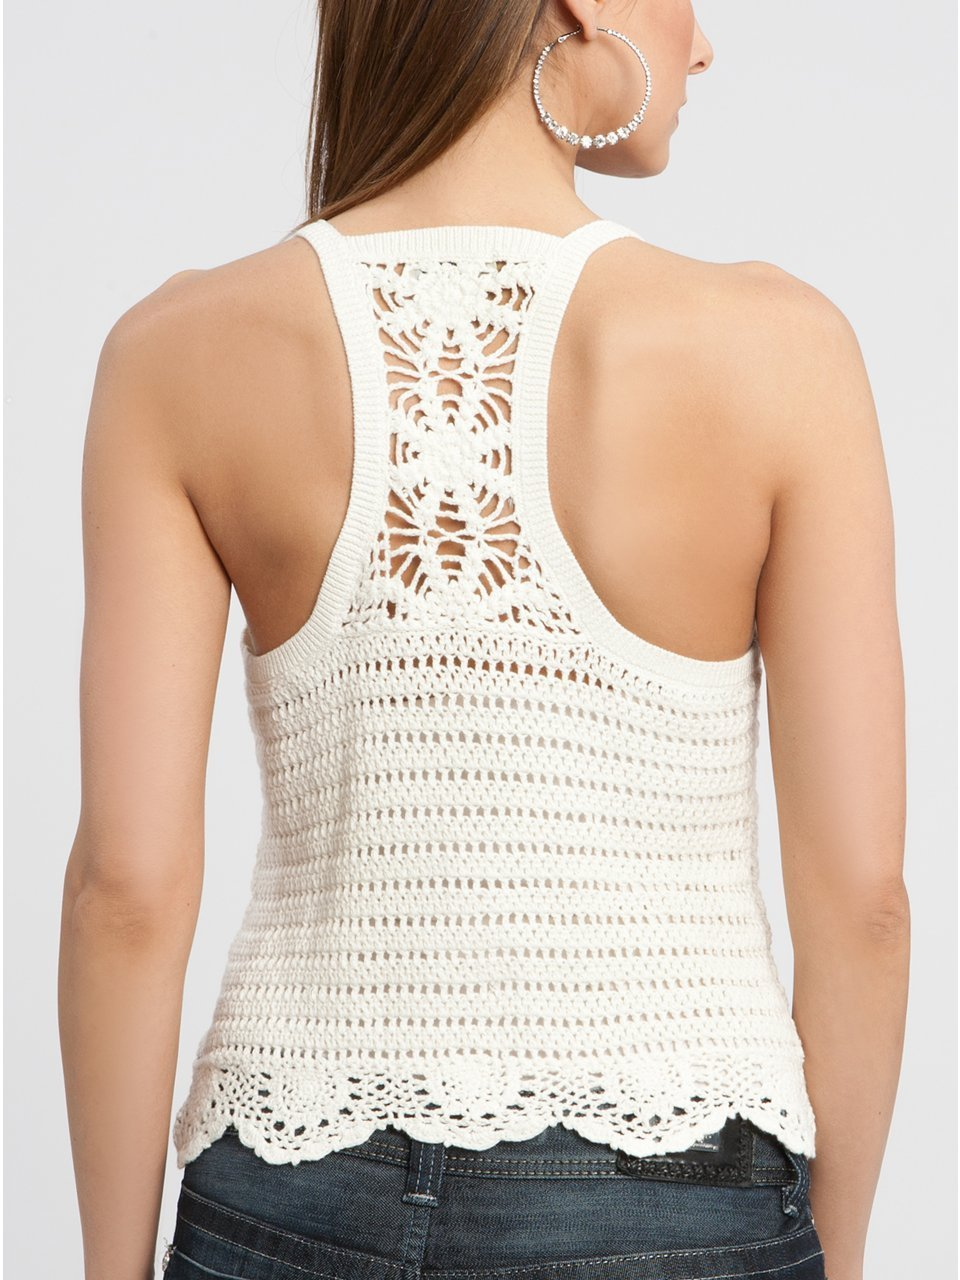 Crocheting On Top Of Crochet : Crochetemoda Blog: Top Branco de Crochet